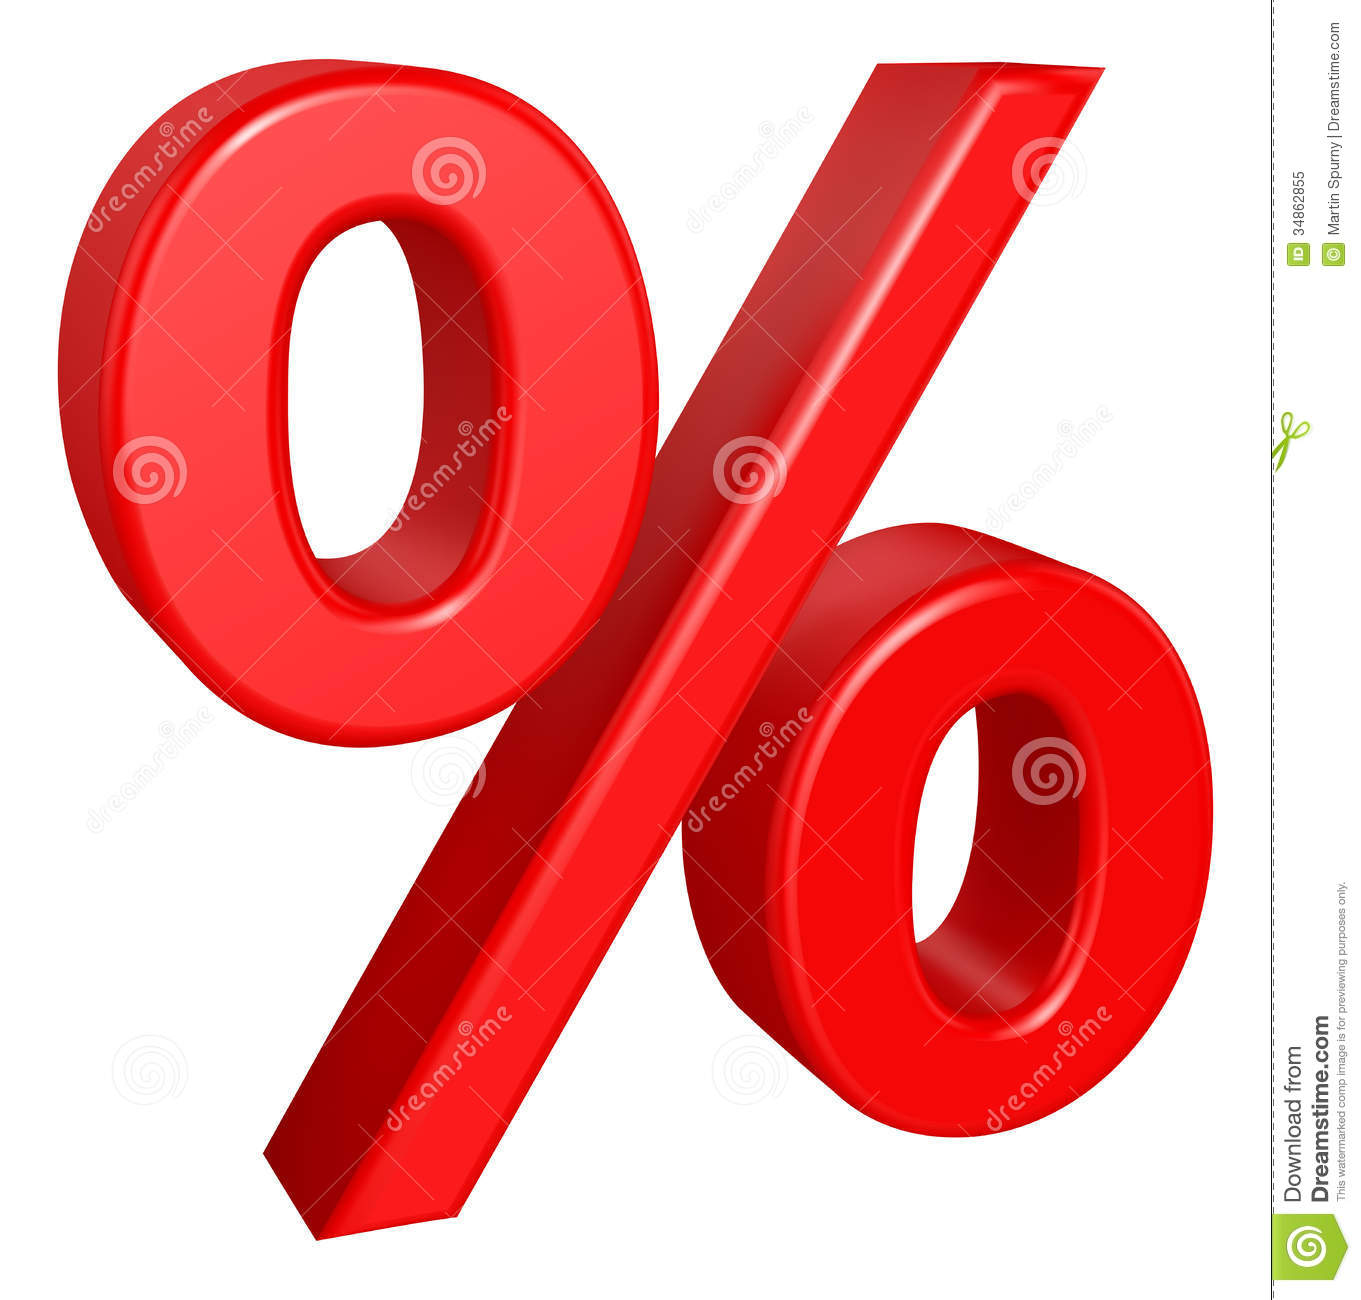 Percent Sign Royalty Free Stock Photo - Image: 34862855